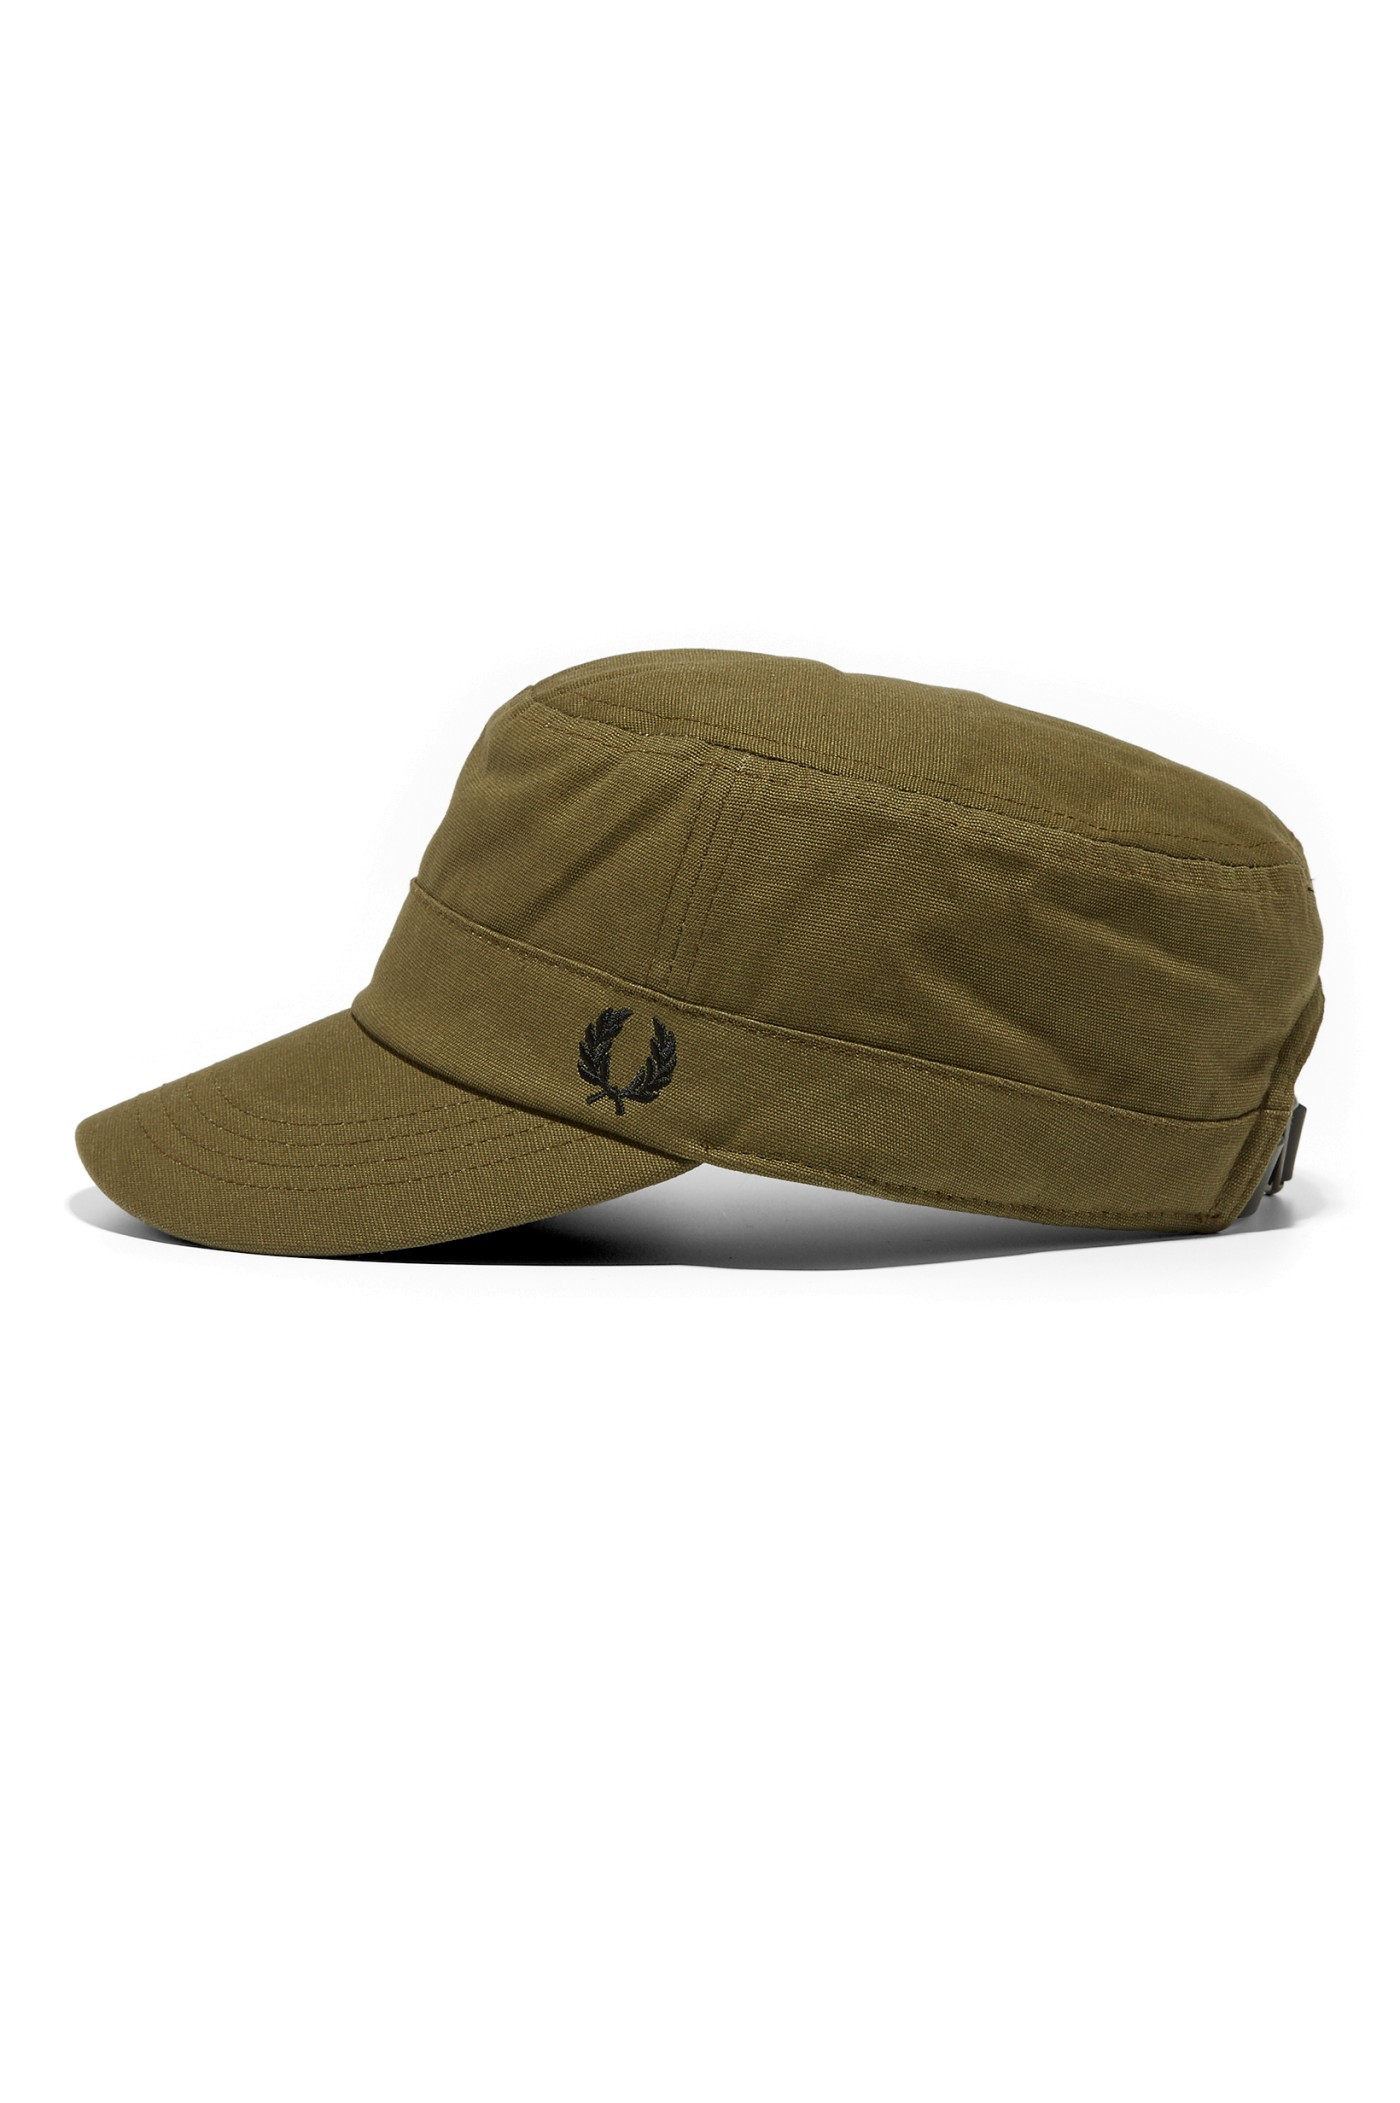 Fred Perry Waxed Canvas Cadet Cap